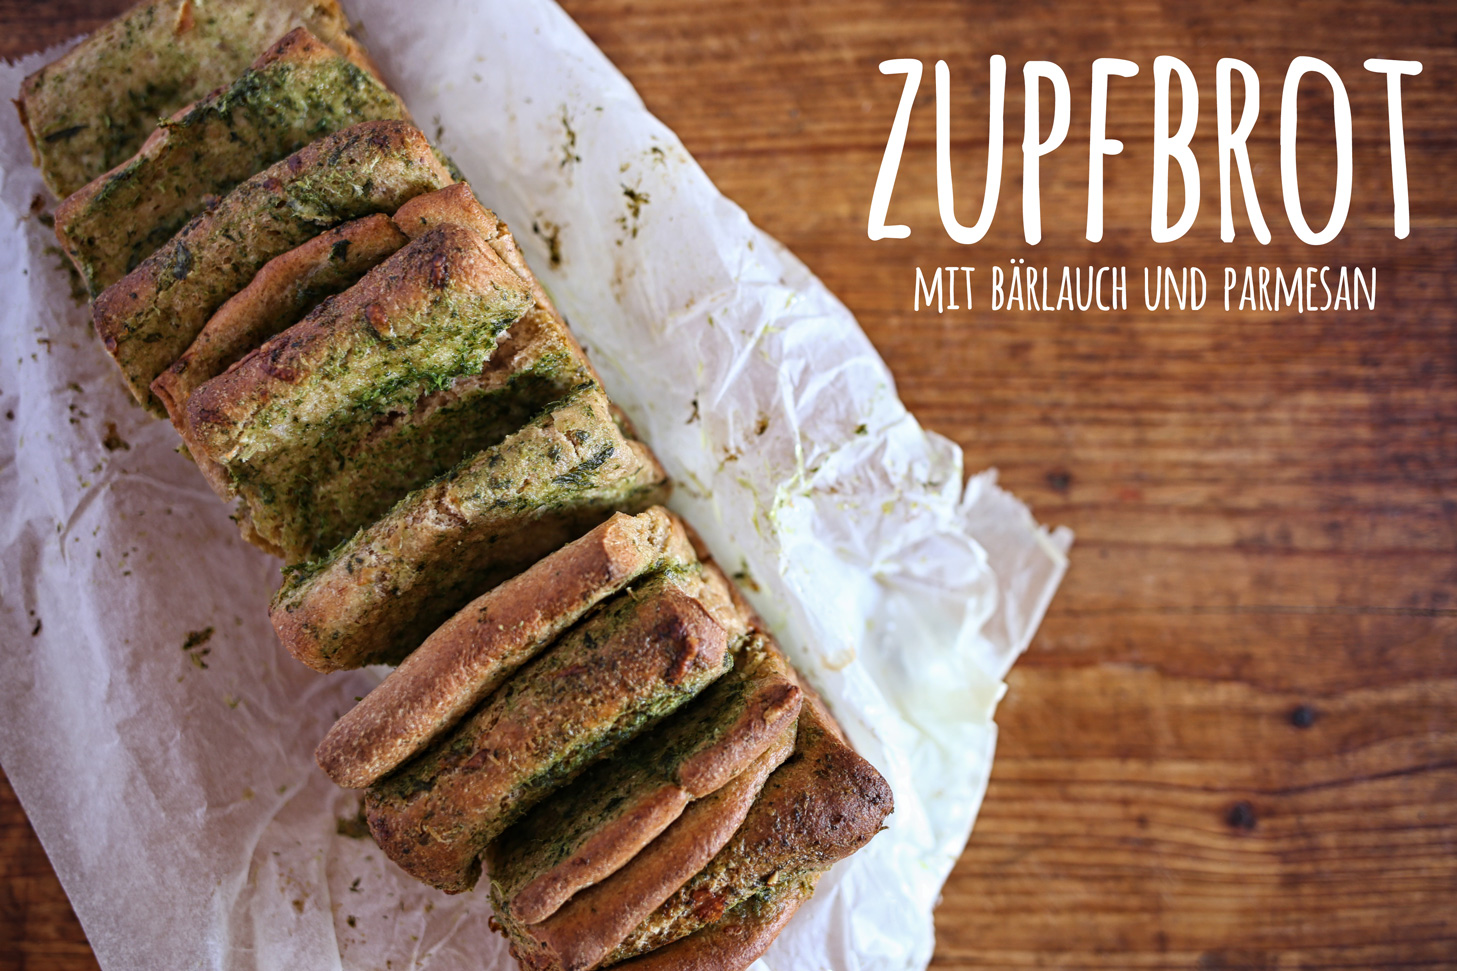 Zupfbrot